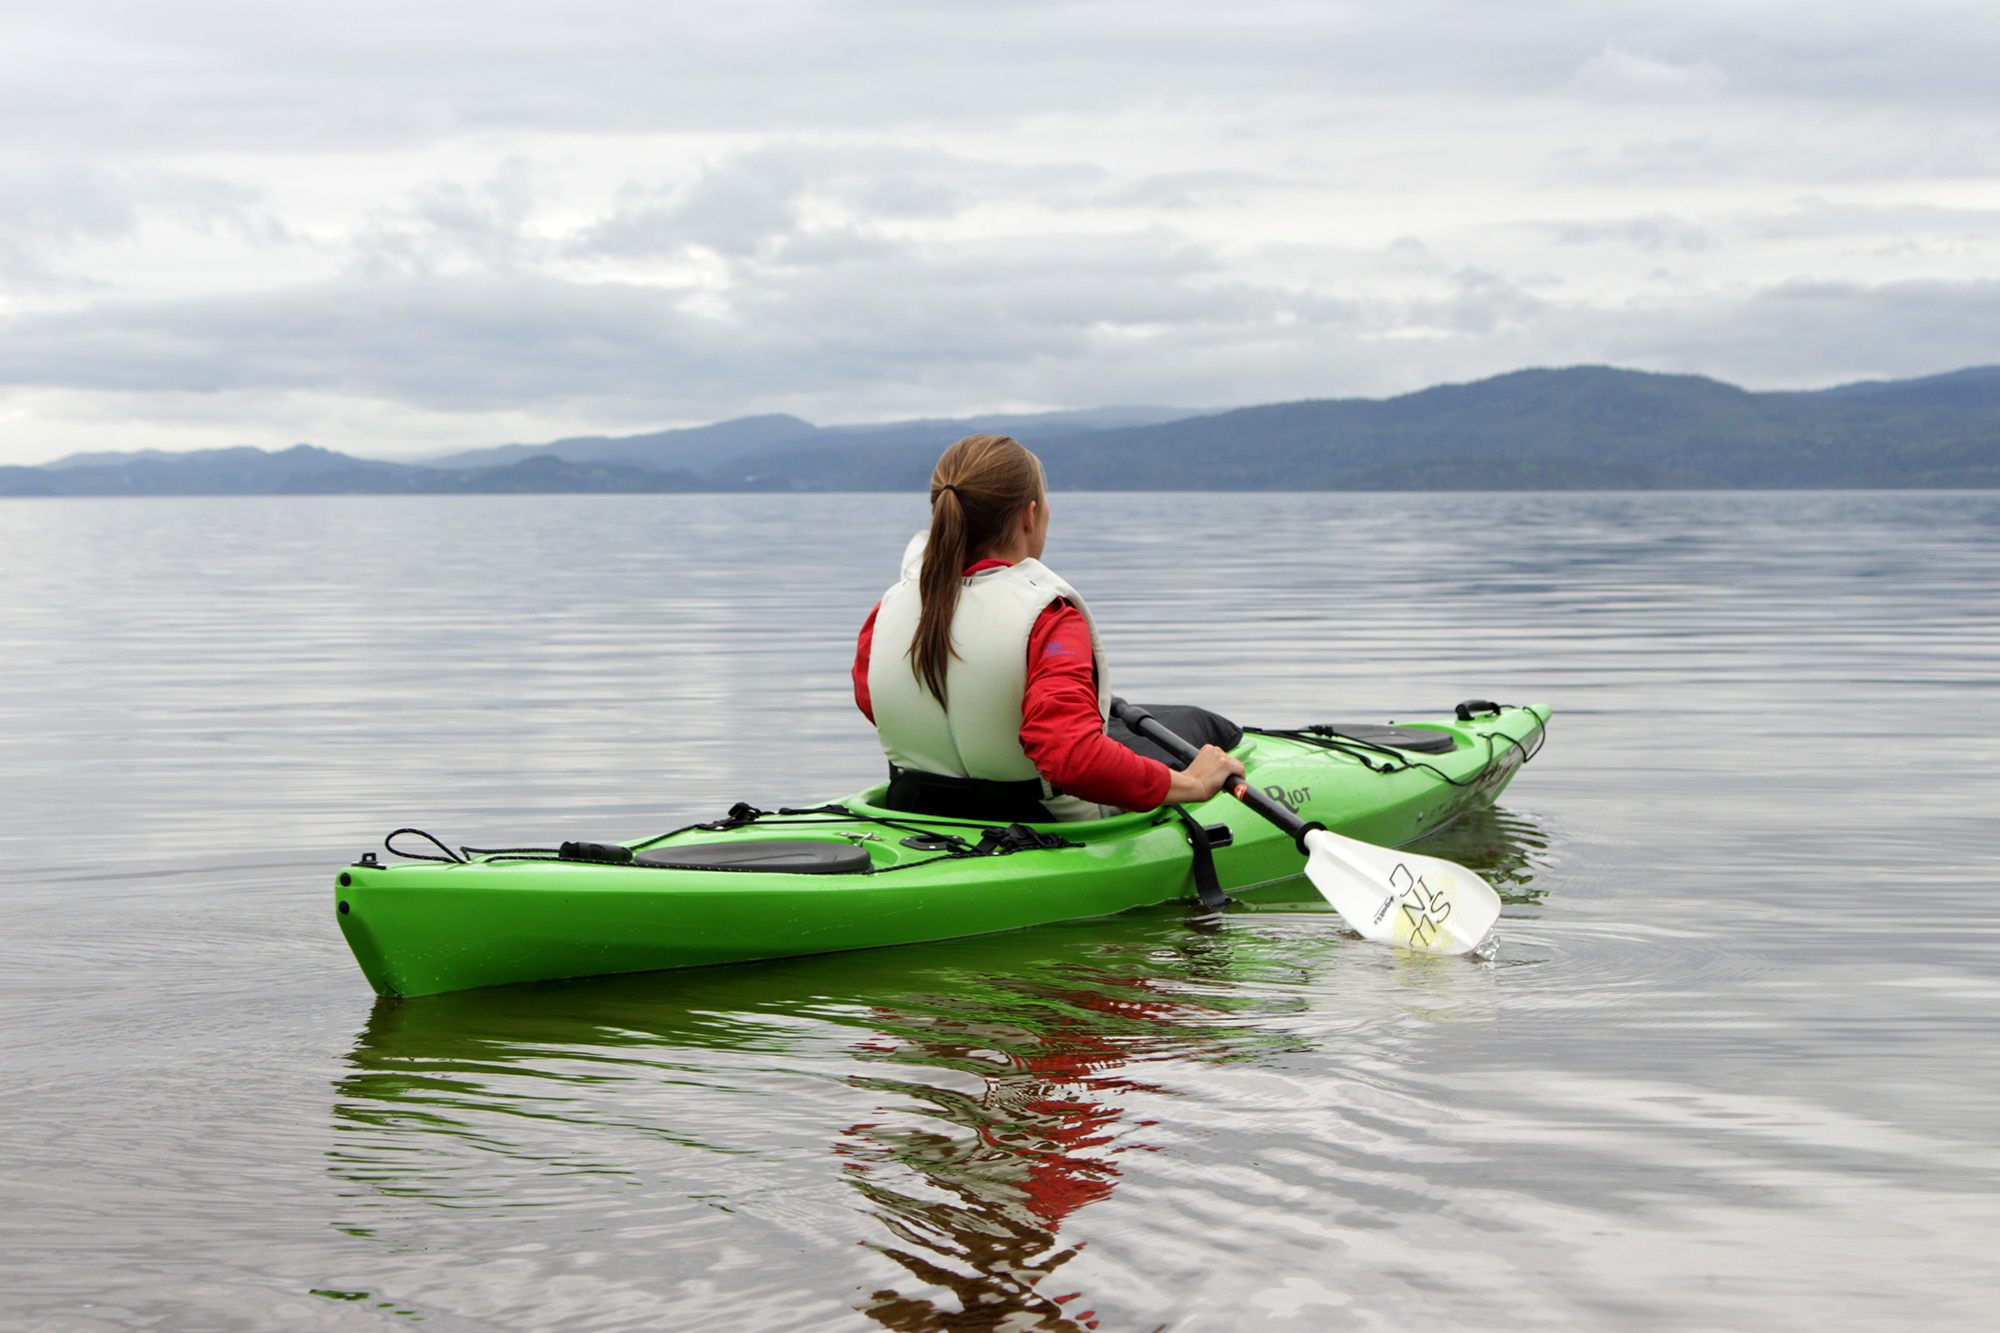 Padling on Lake Snåsavatnet. Photo: Visit Innherred